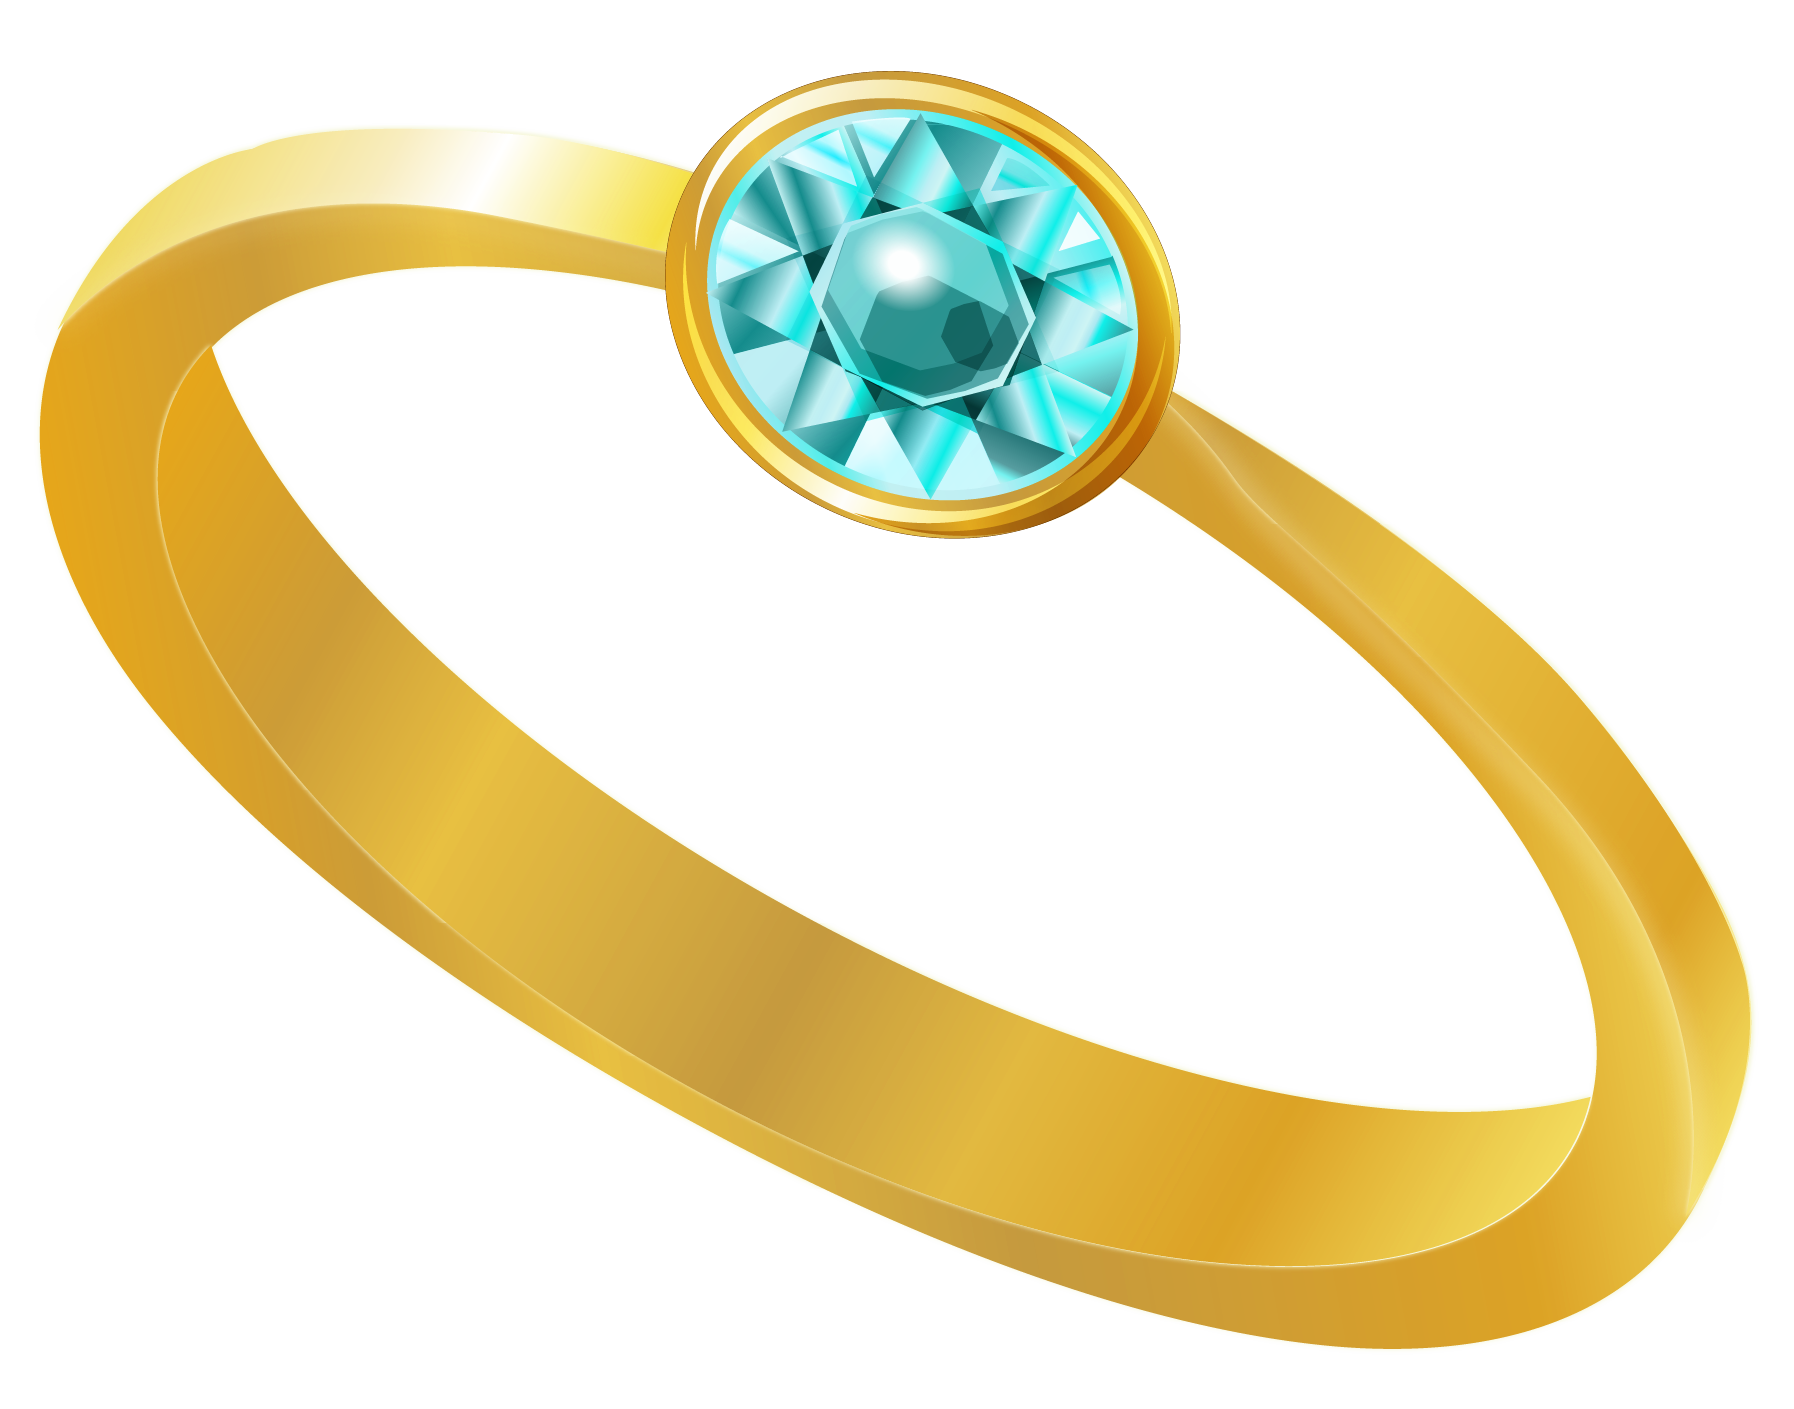 Golden ring with blue. Jewelry clip transparent download